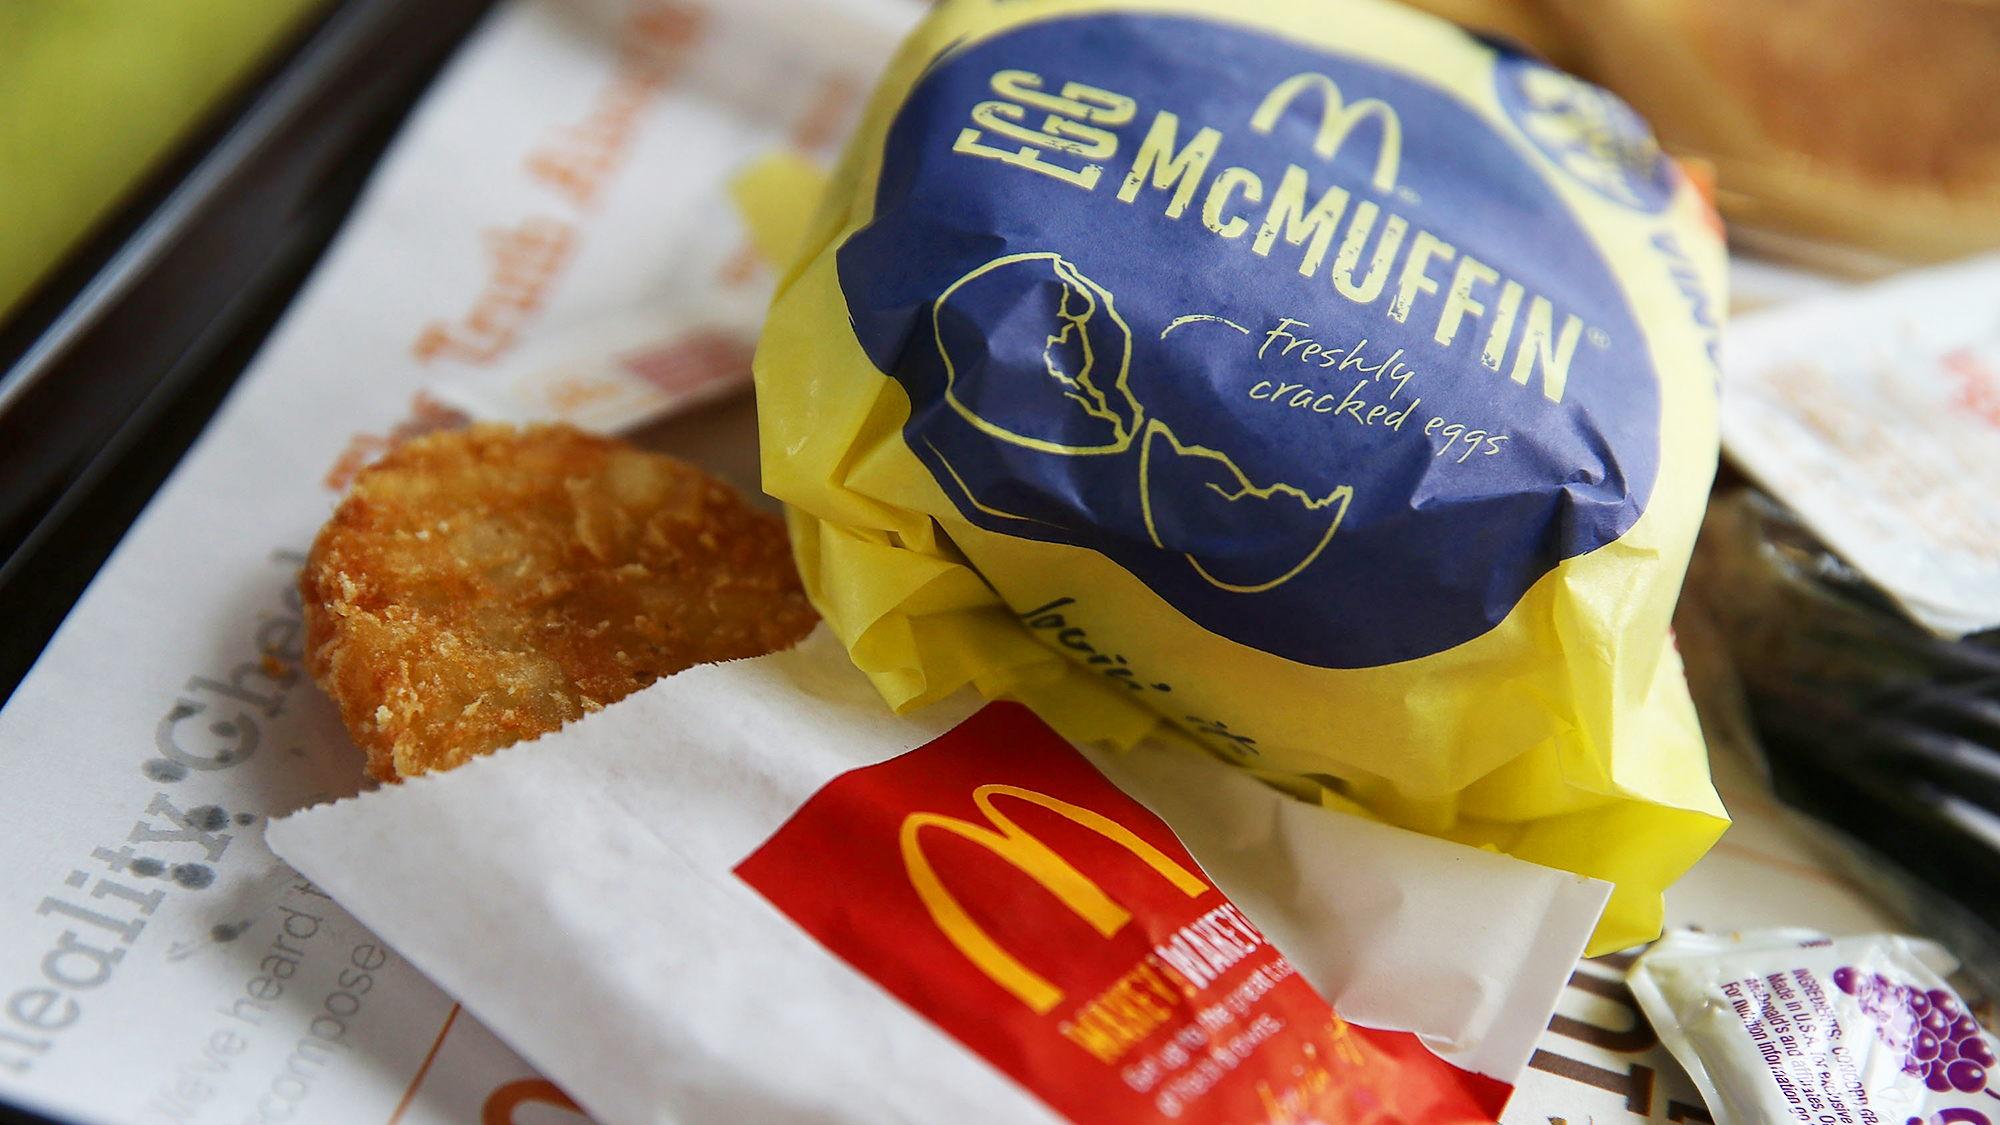 McDonald's has shared the official Sausage and Egg McMuffin recipe to recreate at home   Marie Claire